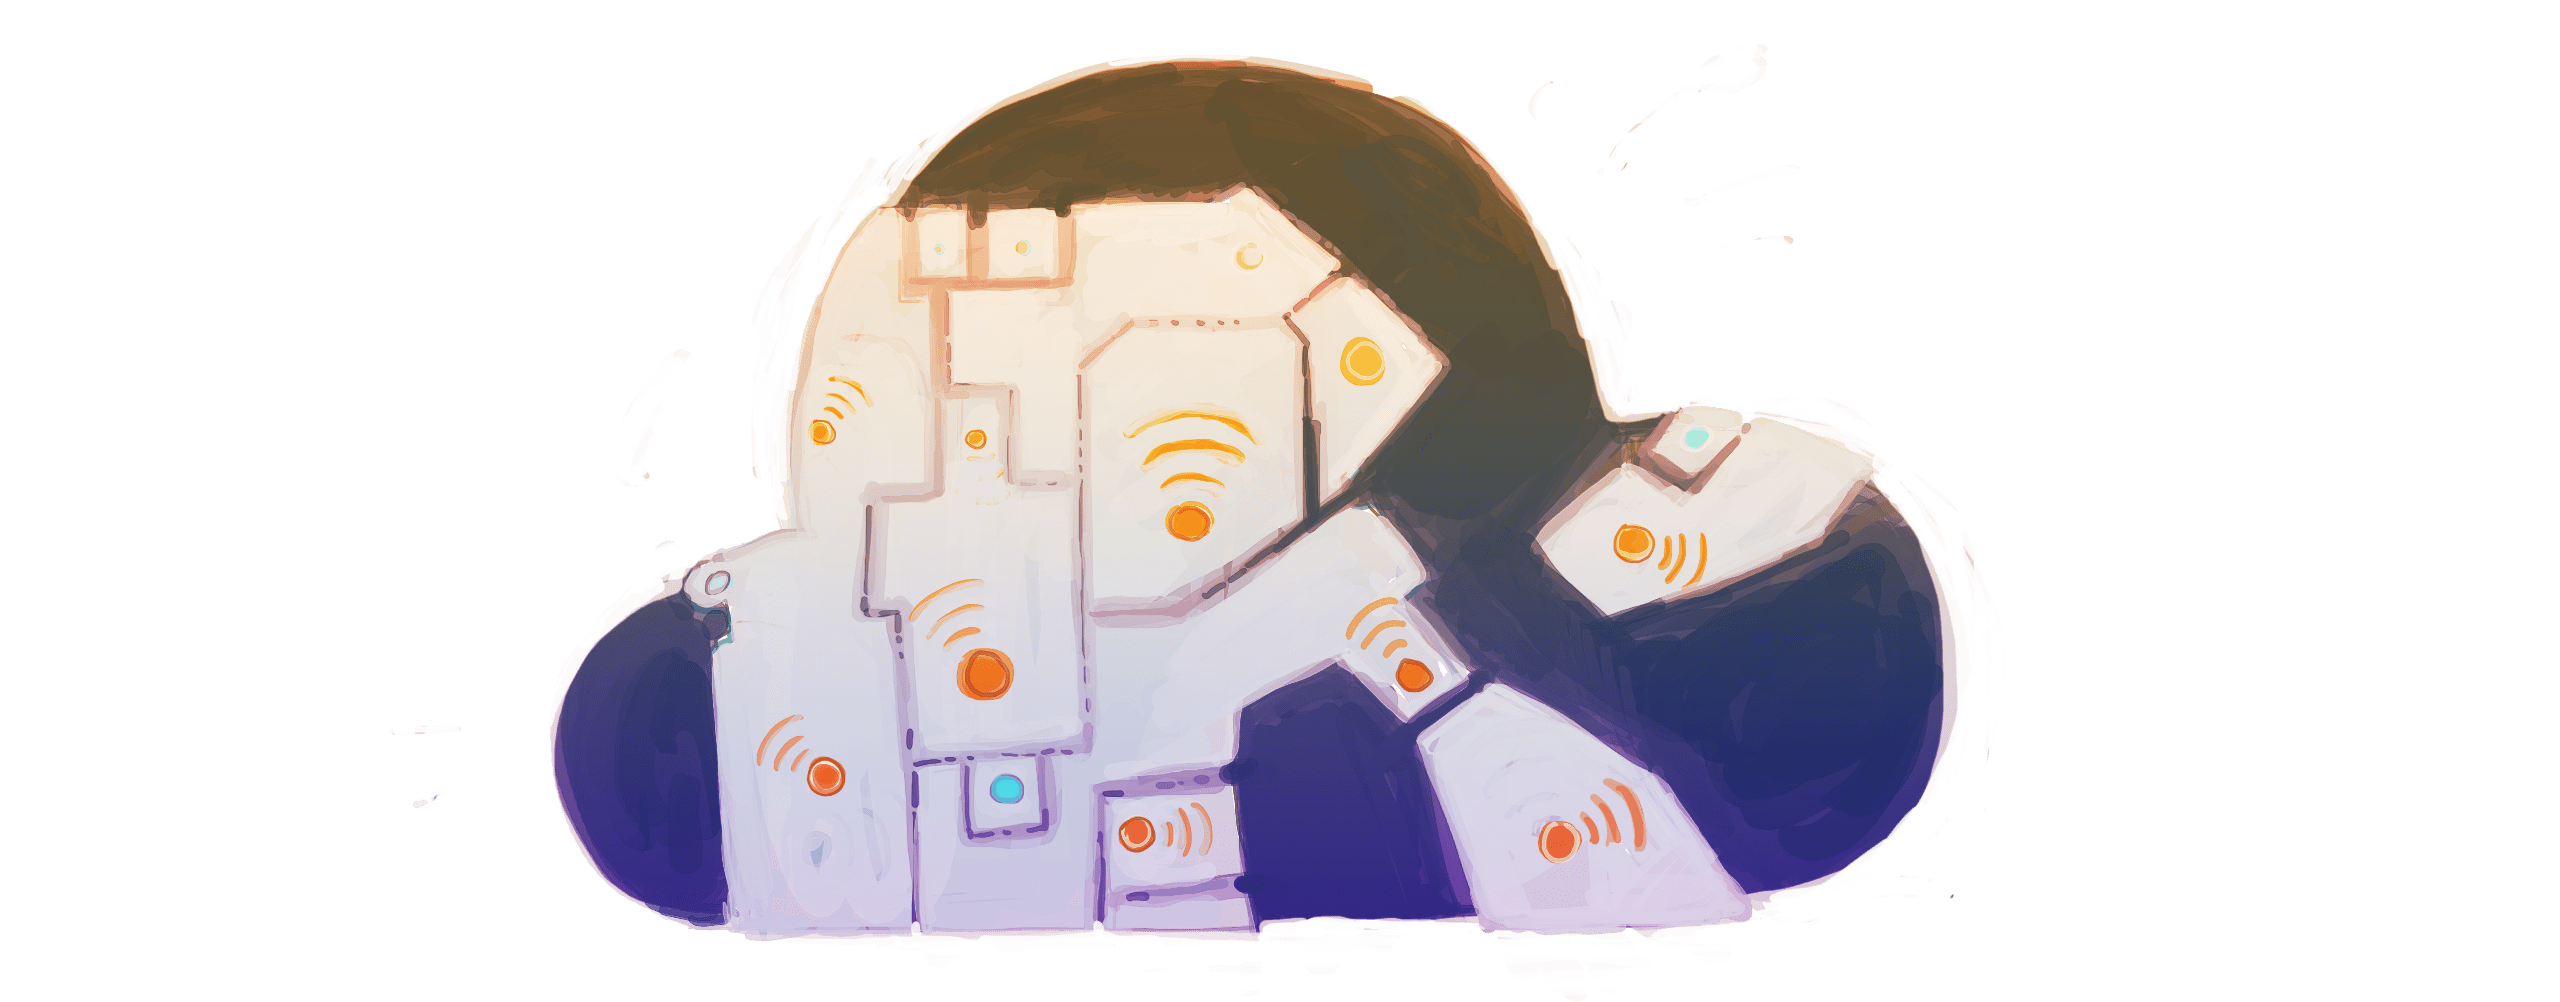 iot-office-1.png